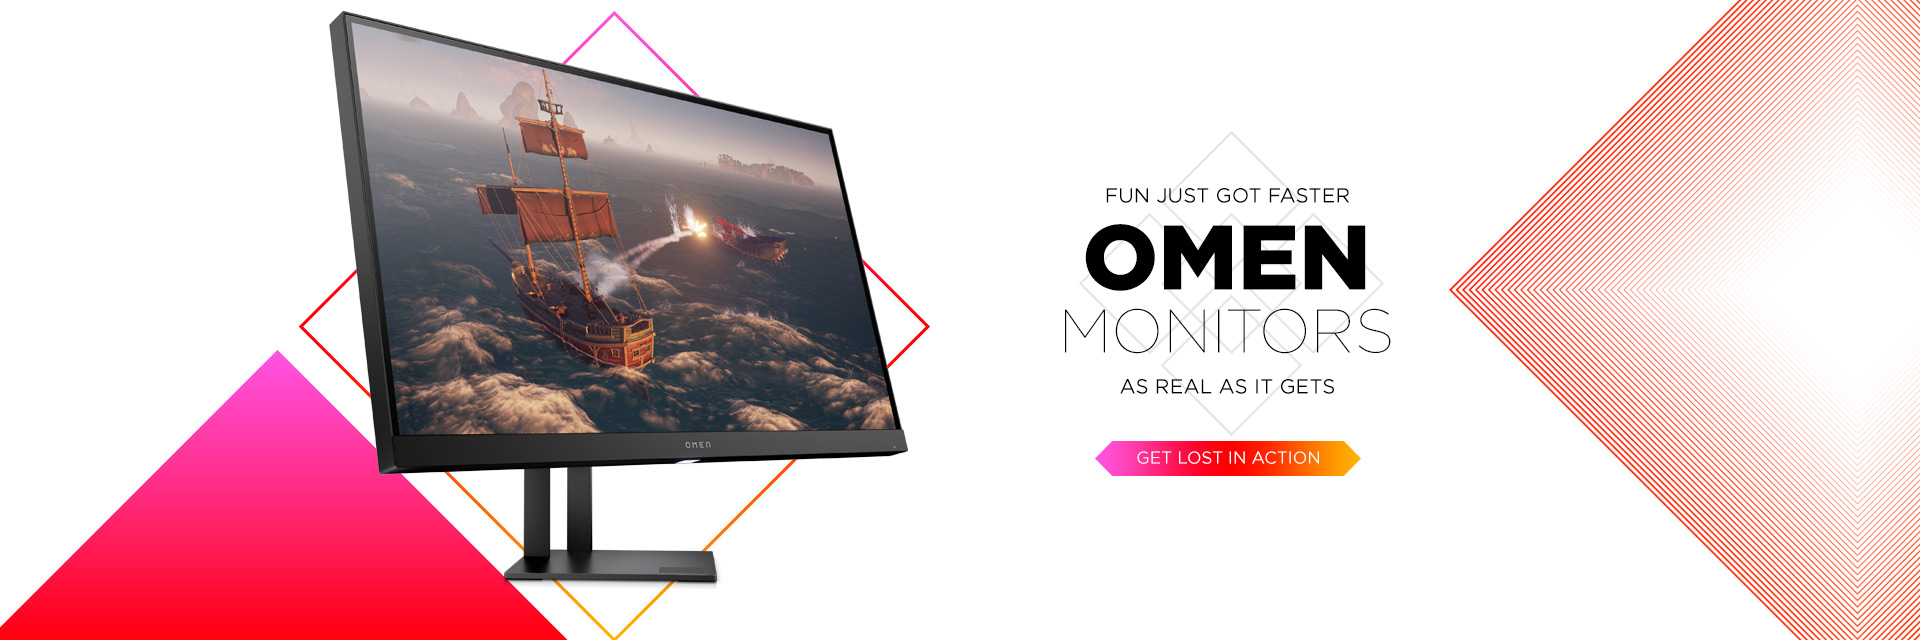 Fun just got faster, omen monitors as real as it gets. Get lost in action.